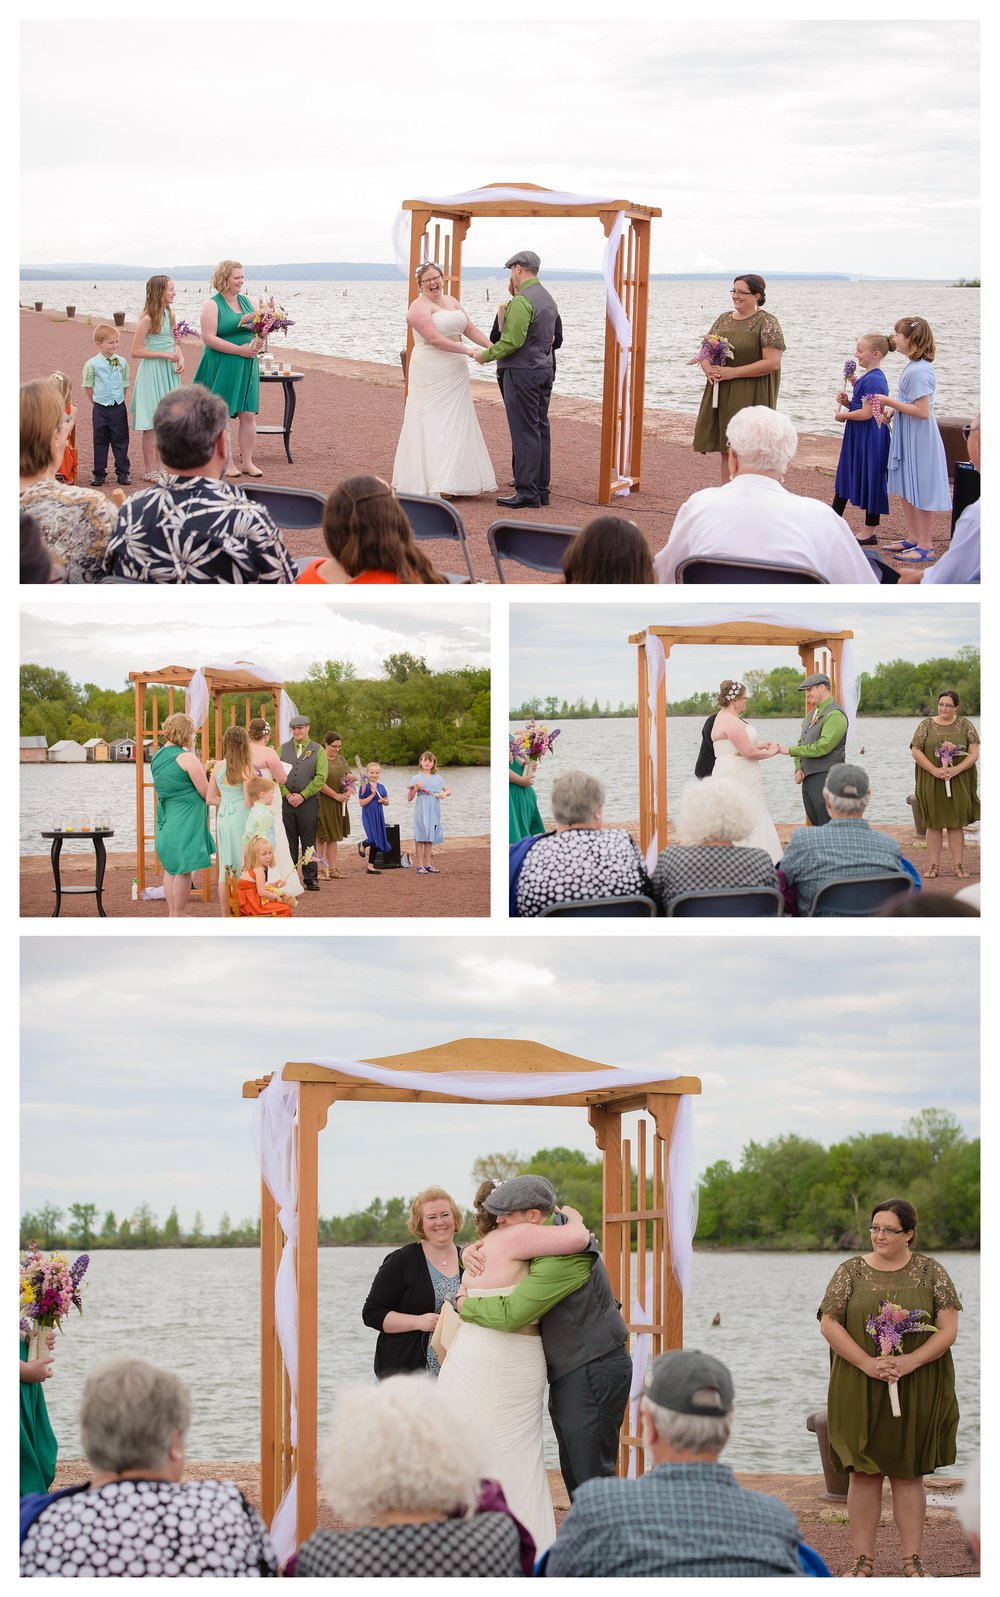 ashland oredock northwoods wisconsin wedding ps 139 photography_0285.jpg